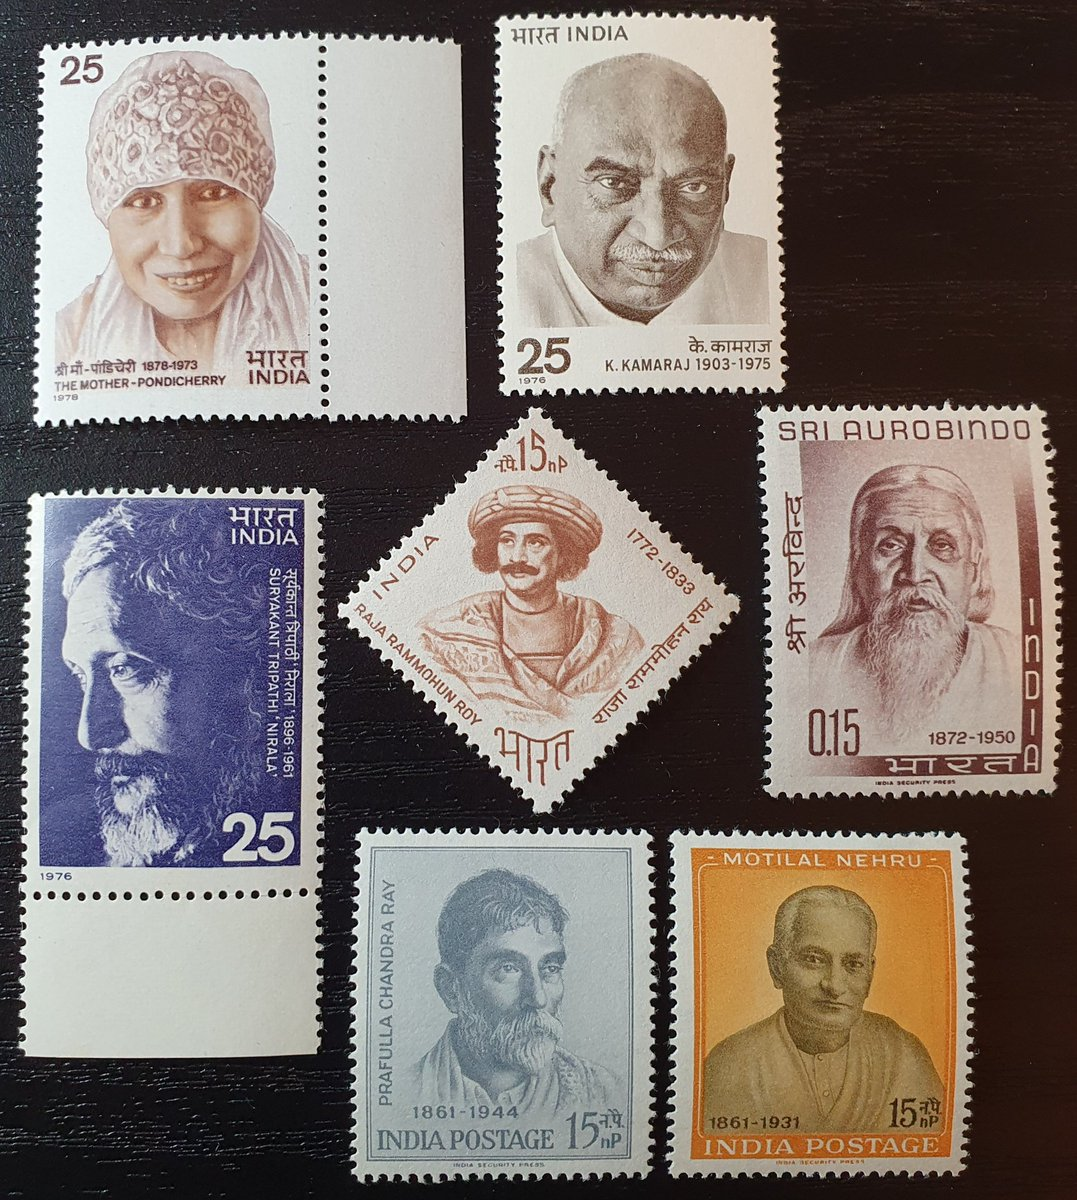 India Stamps Collection. Personalities.  #stampsphilately #stamp #timbre #filatelia #филателия #邮票 #切手 #philately #collecting #stampcollecting